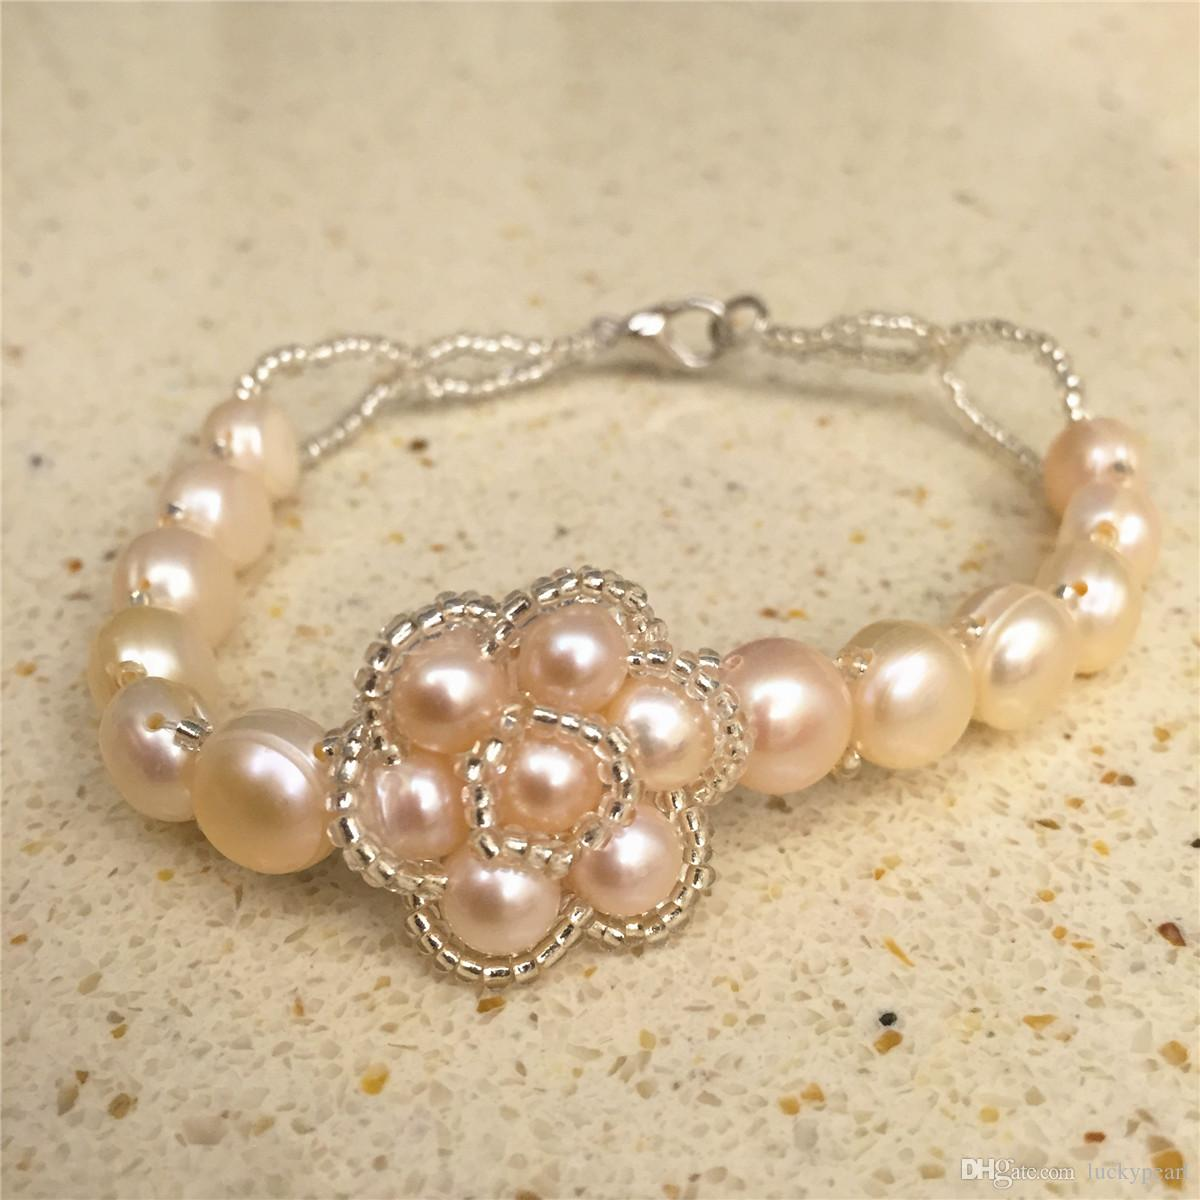 Whosale New Natural Fresh Water Rose Button Pearl crystal Fashion Style Bracelets Strands Women Jewelry Hot Gift Cheap